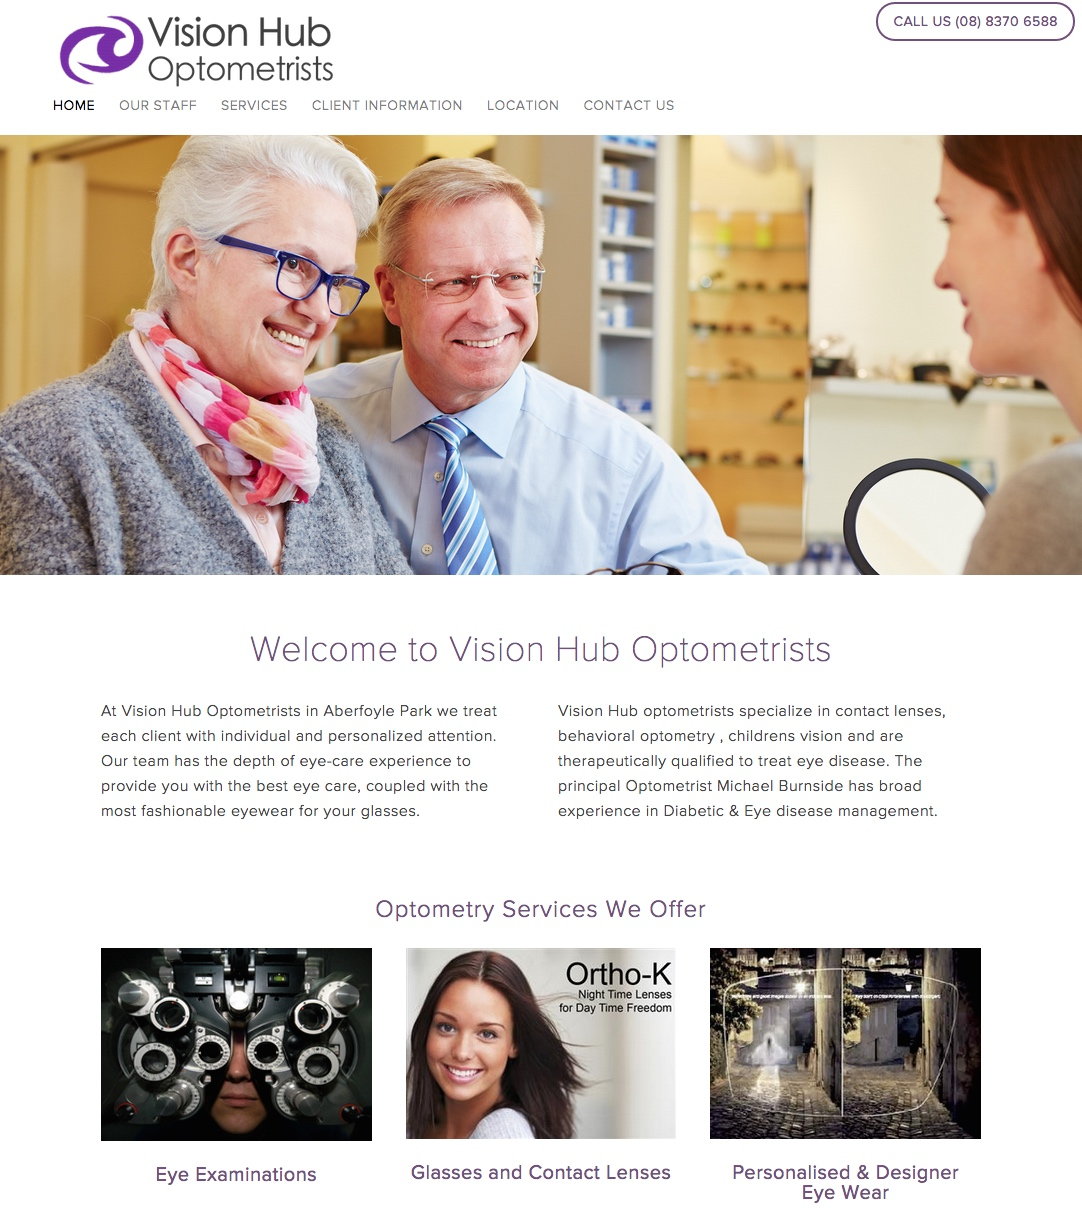 Vision Hub Optometrists